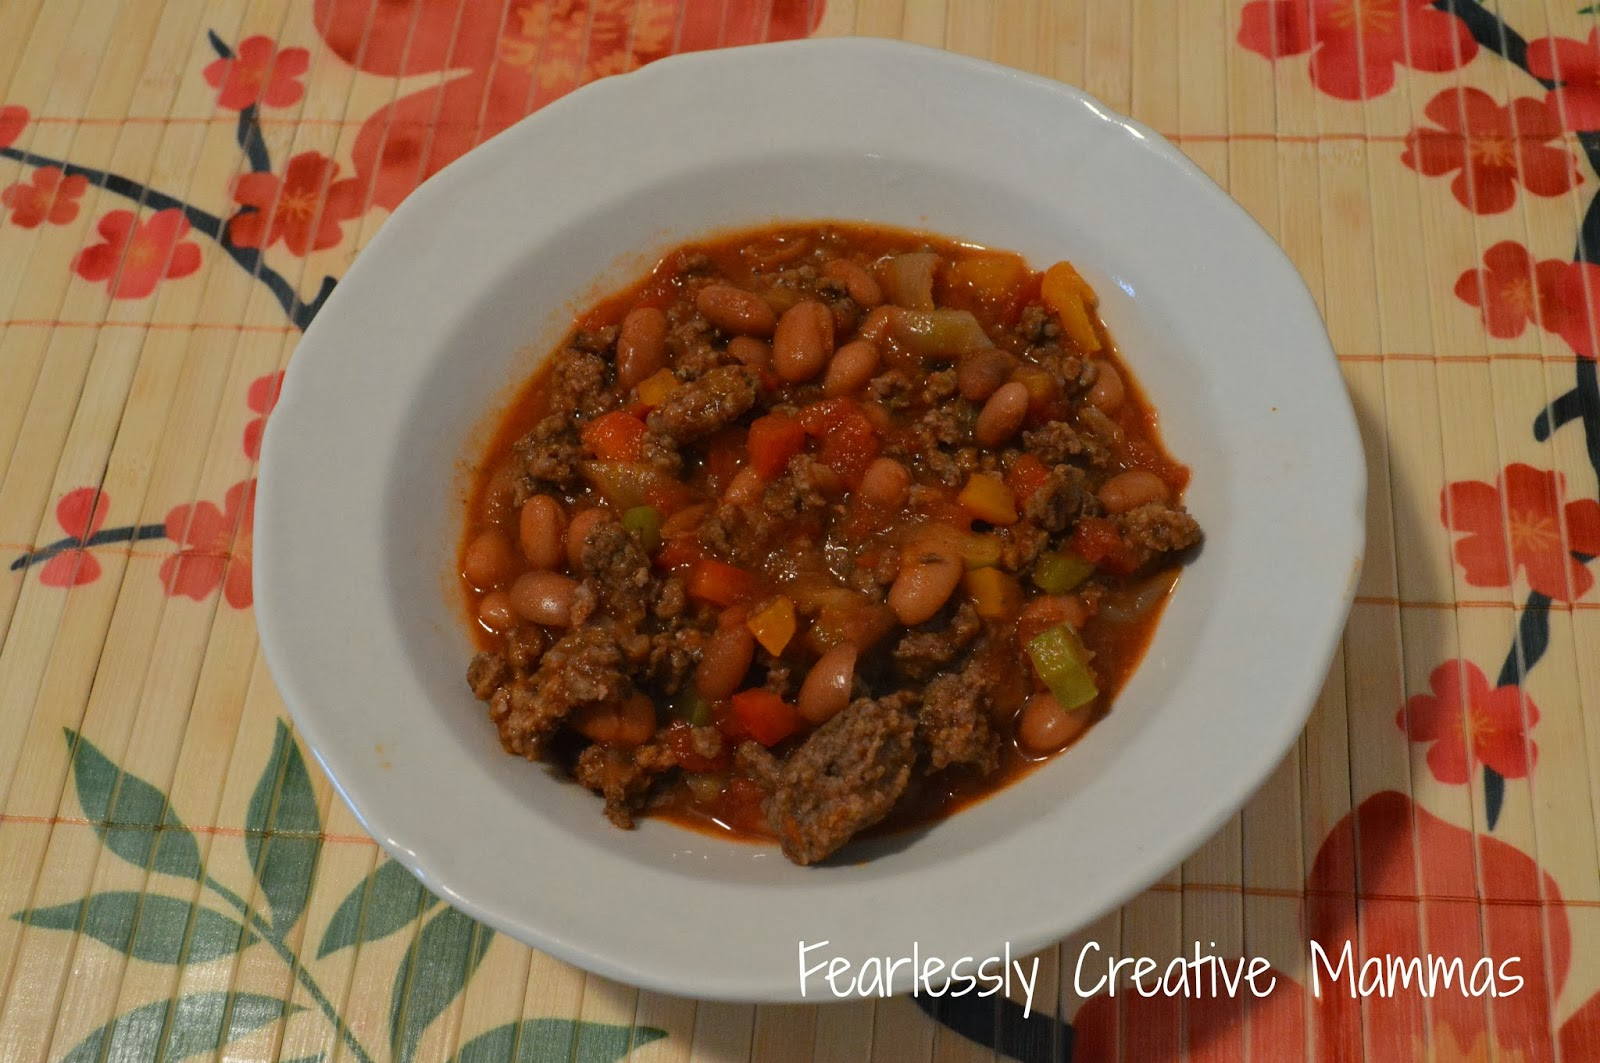 Fearlessly Creative Mammas: Hearty Beef Chili